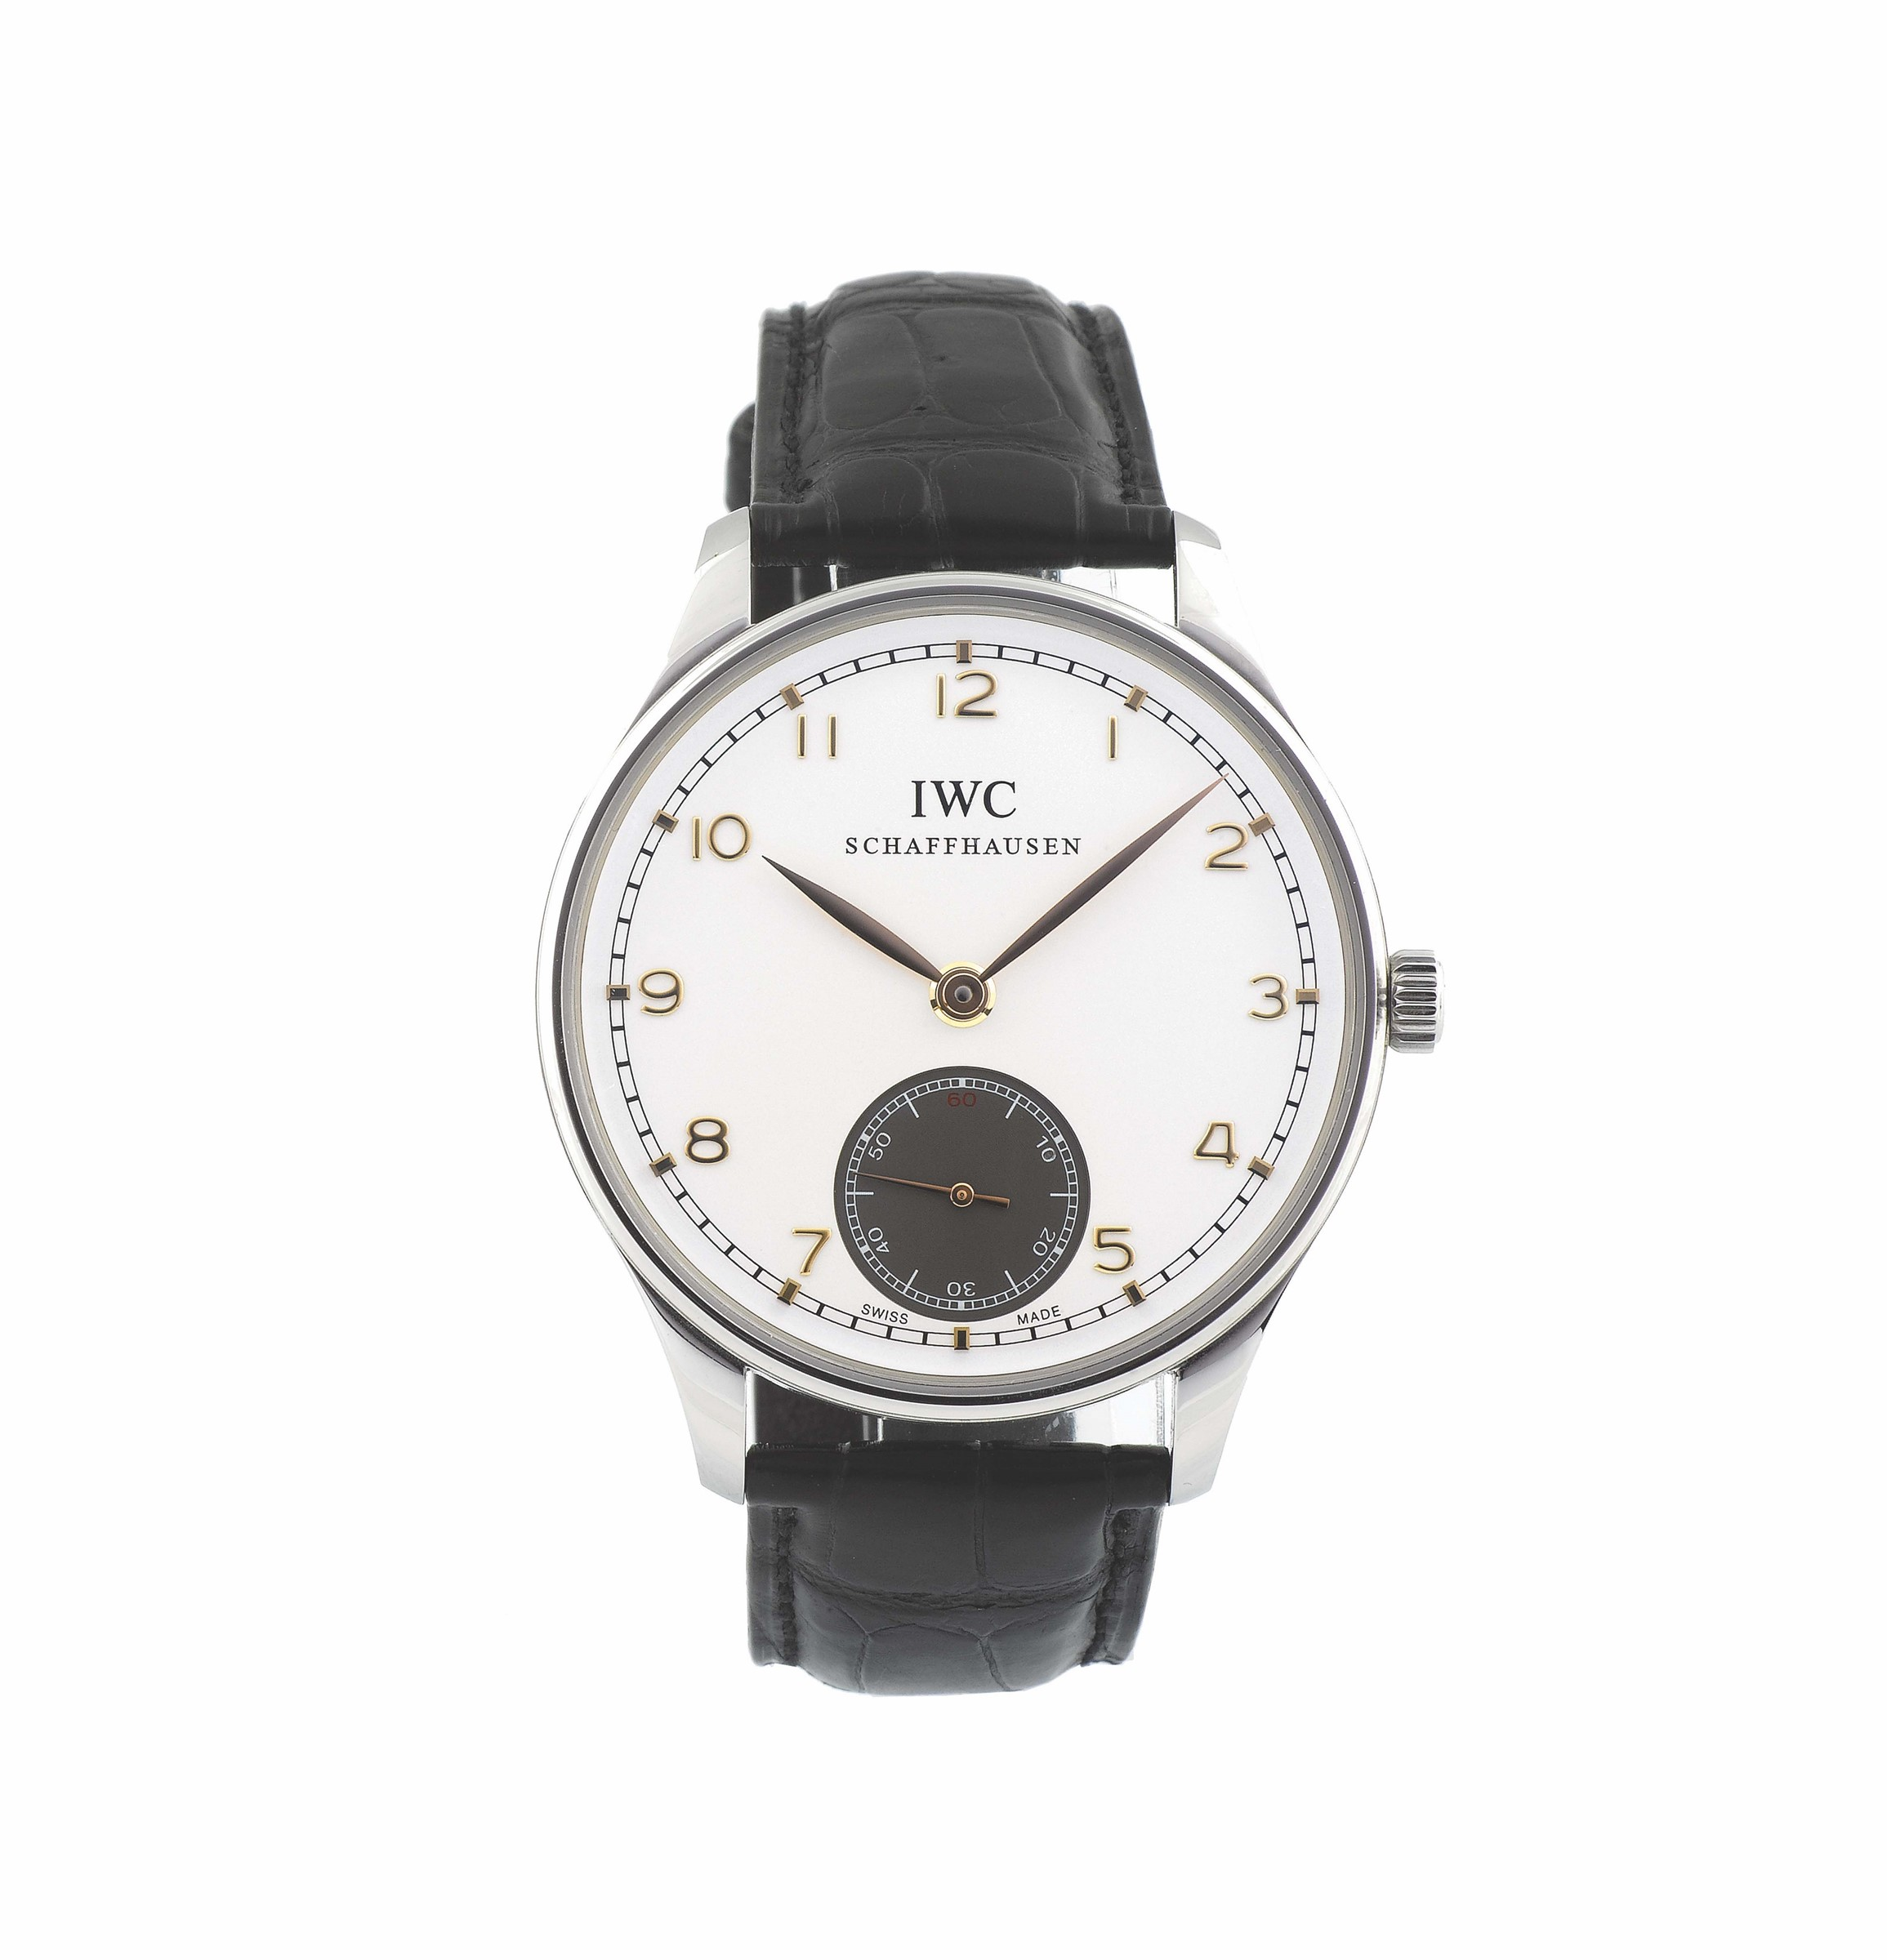 IWC, Portoghese, case No. 3597445, Ref. 5454, stainless steel, water resistant, hand wound wristwatch.  ...